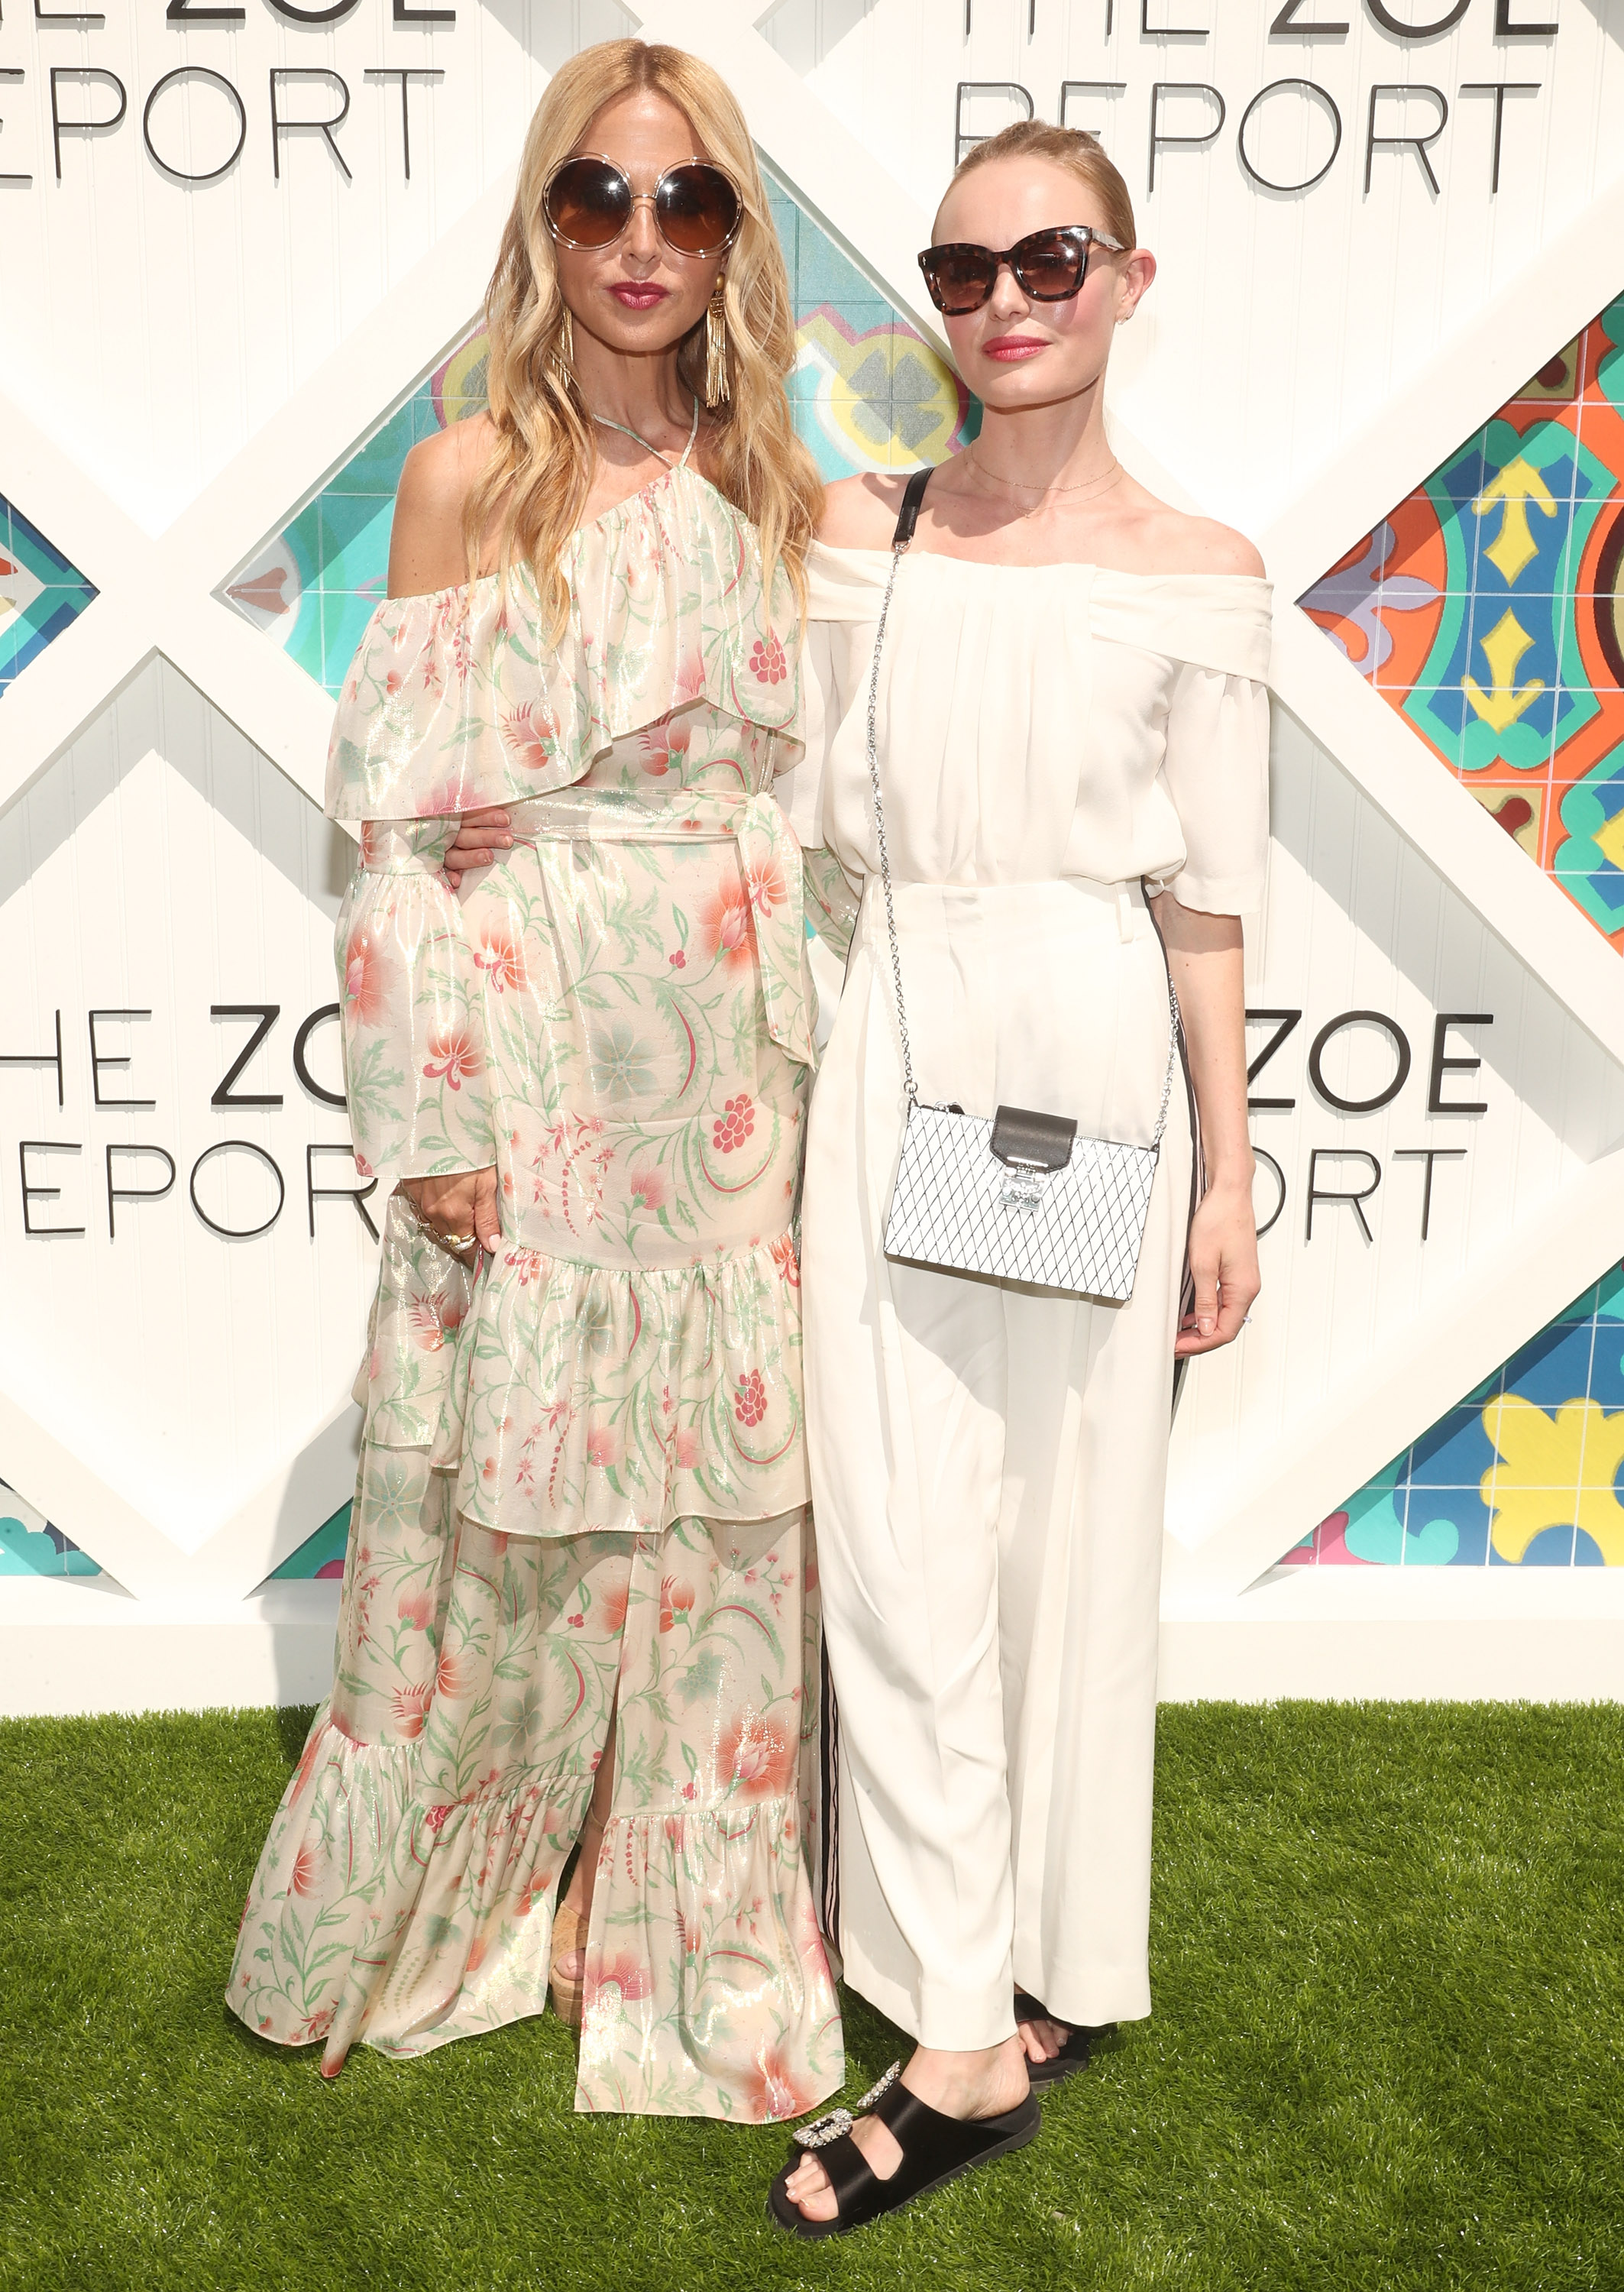 Rachel Zoe Kate Bosworth attend The Zoe Report's ZOEasis on April 15, 2017 in Palm Springs, California. (Photo by Todd Williamson/Getty Images for the Zoe Report)